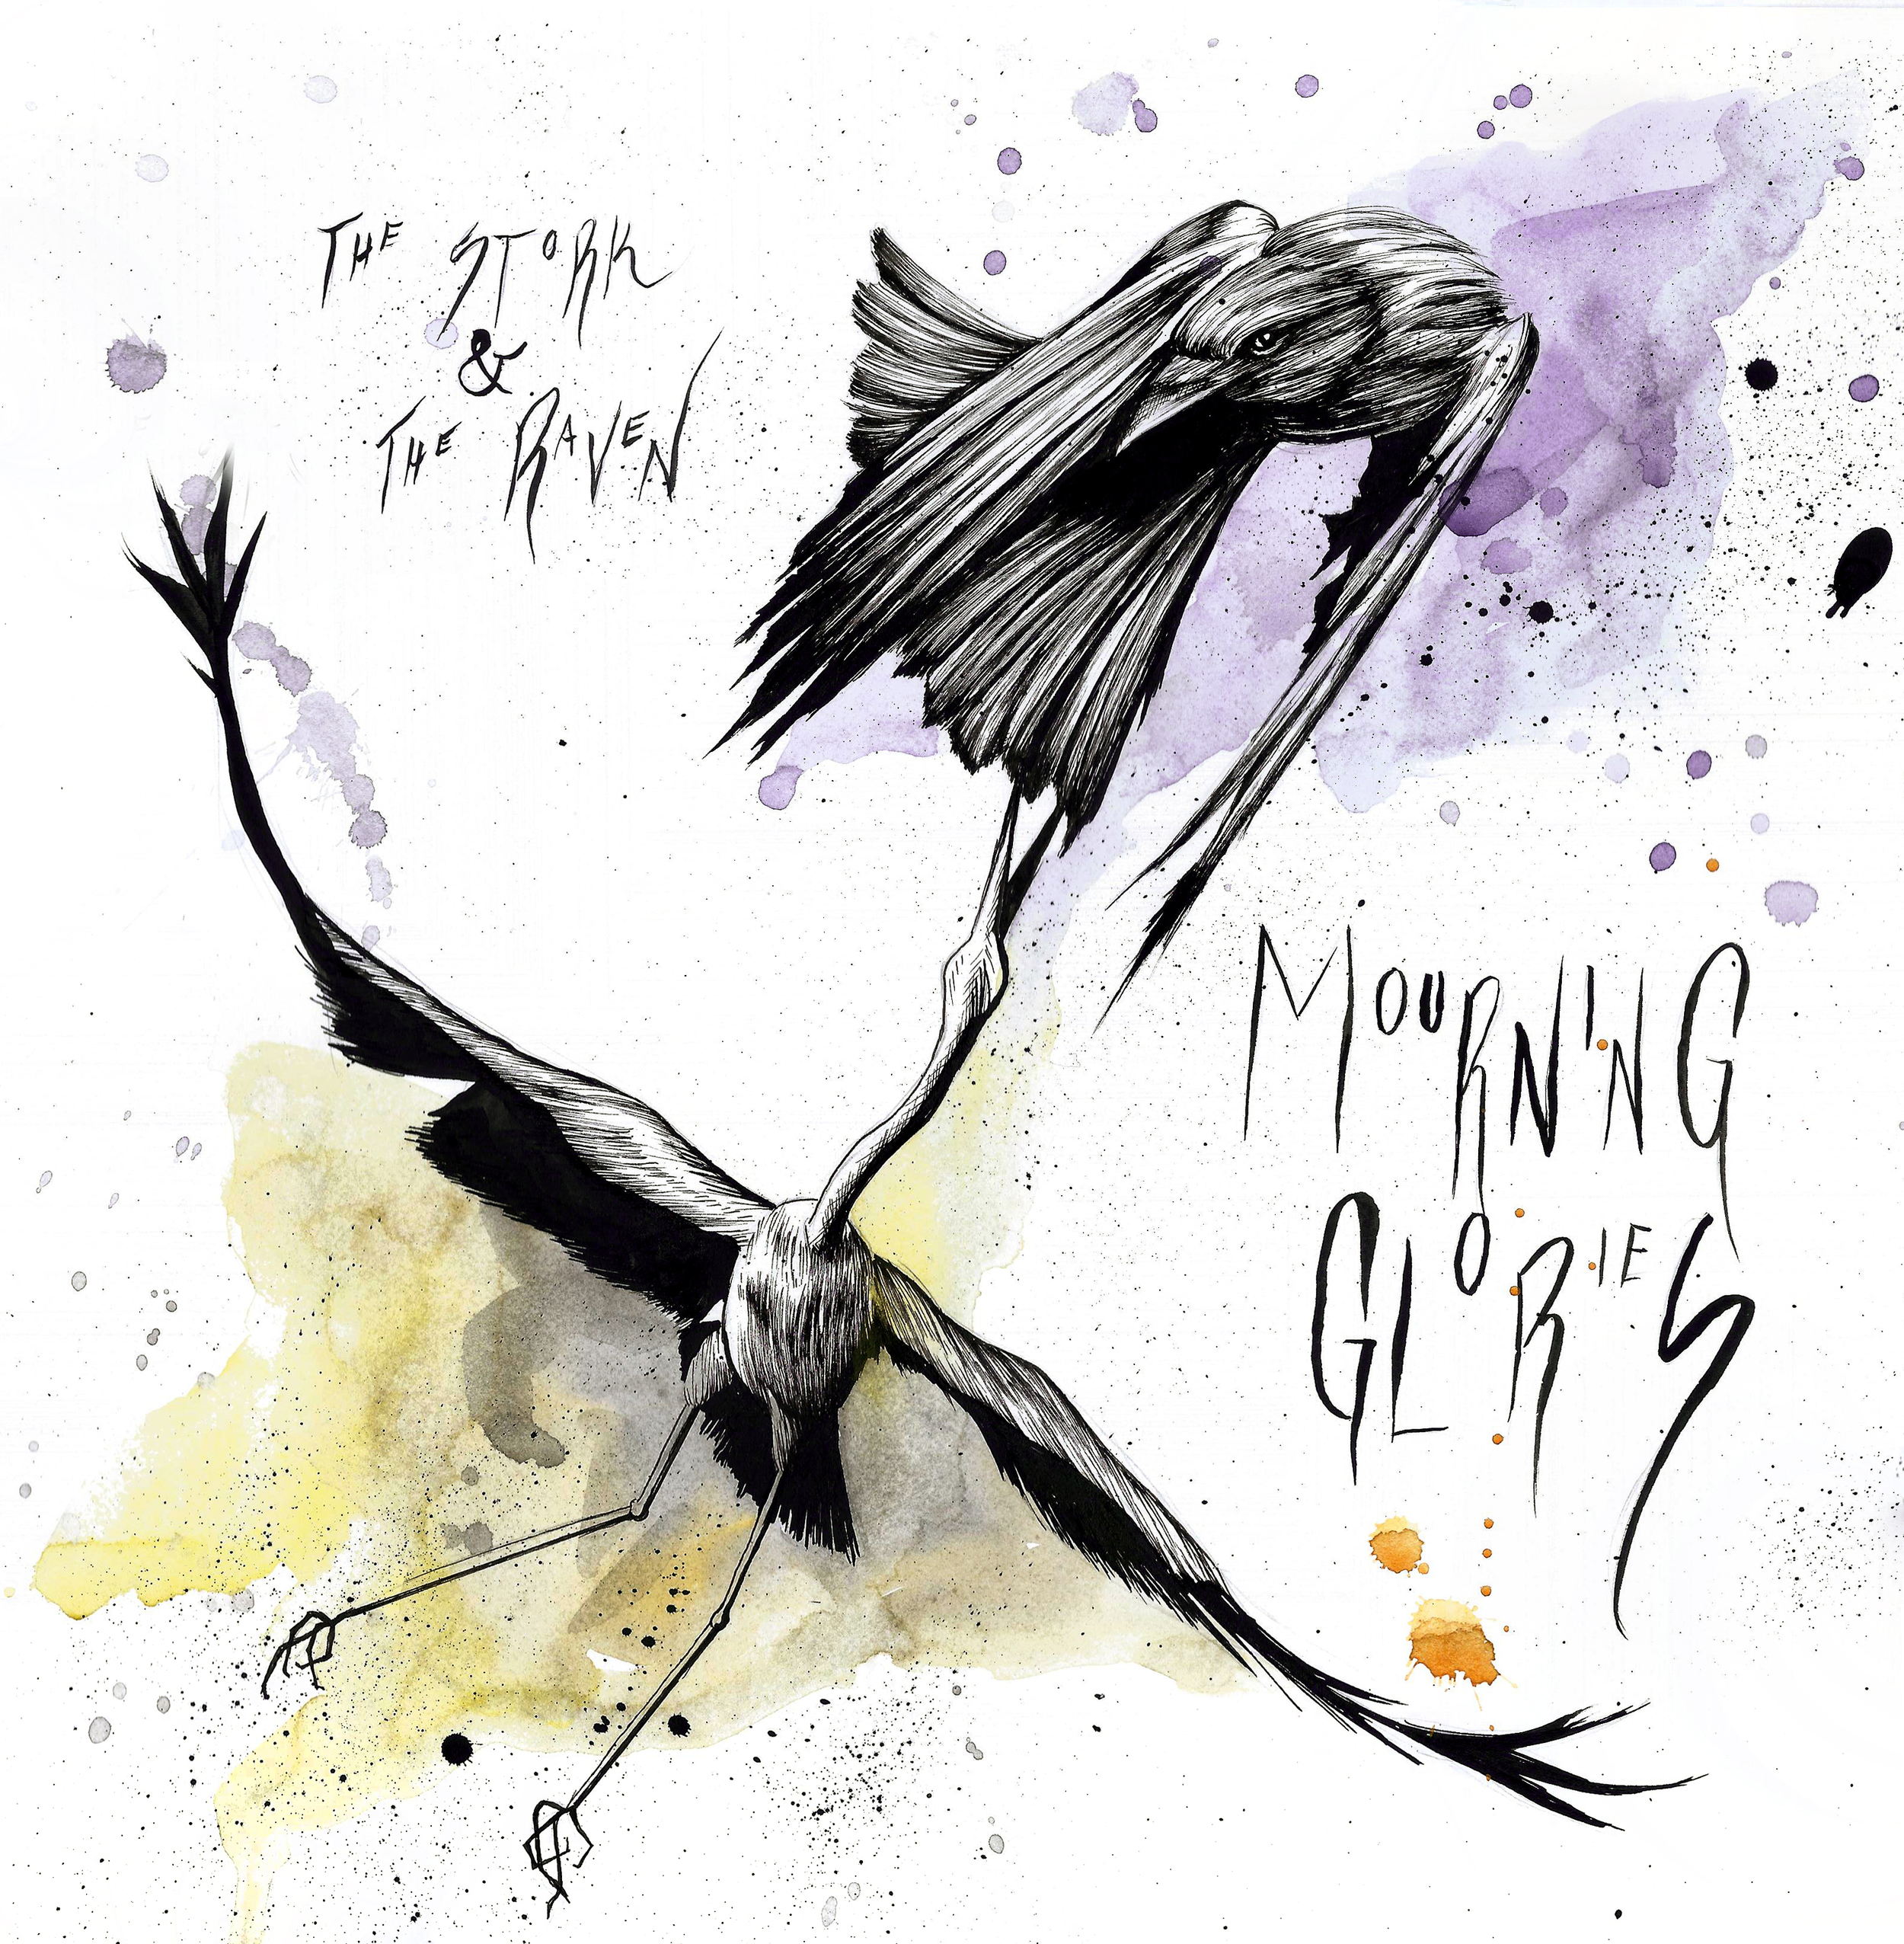 "Mourning Glories, ""The Stork and the Raven"" album cover"